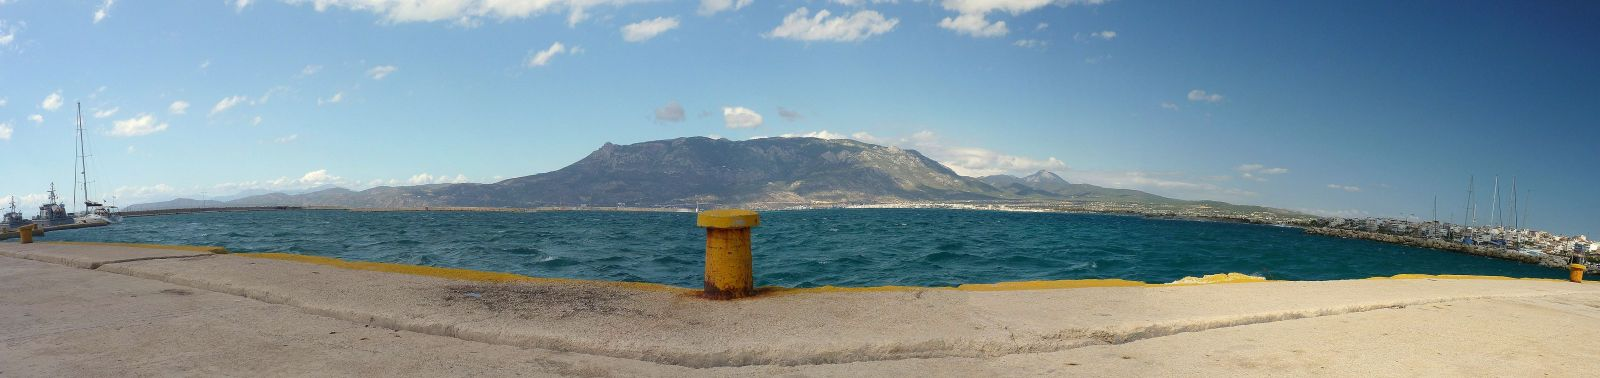 Port of Corinth